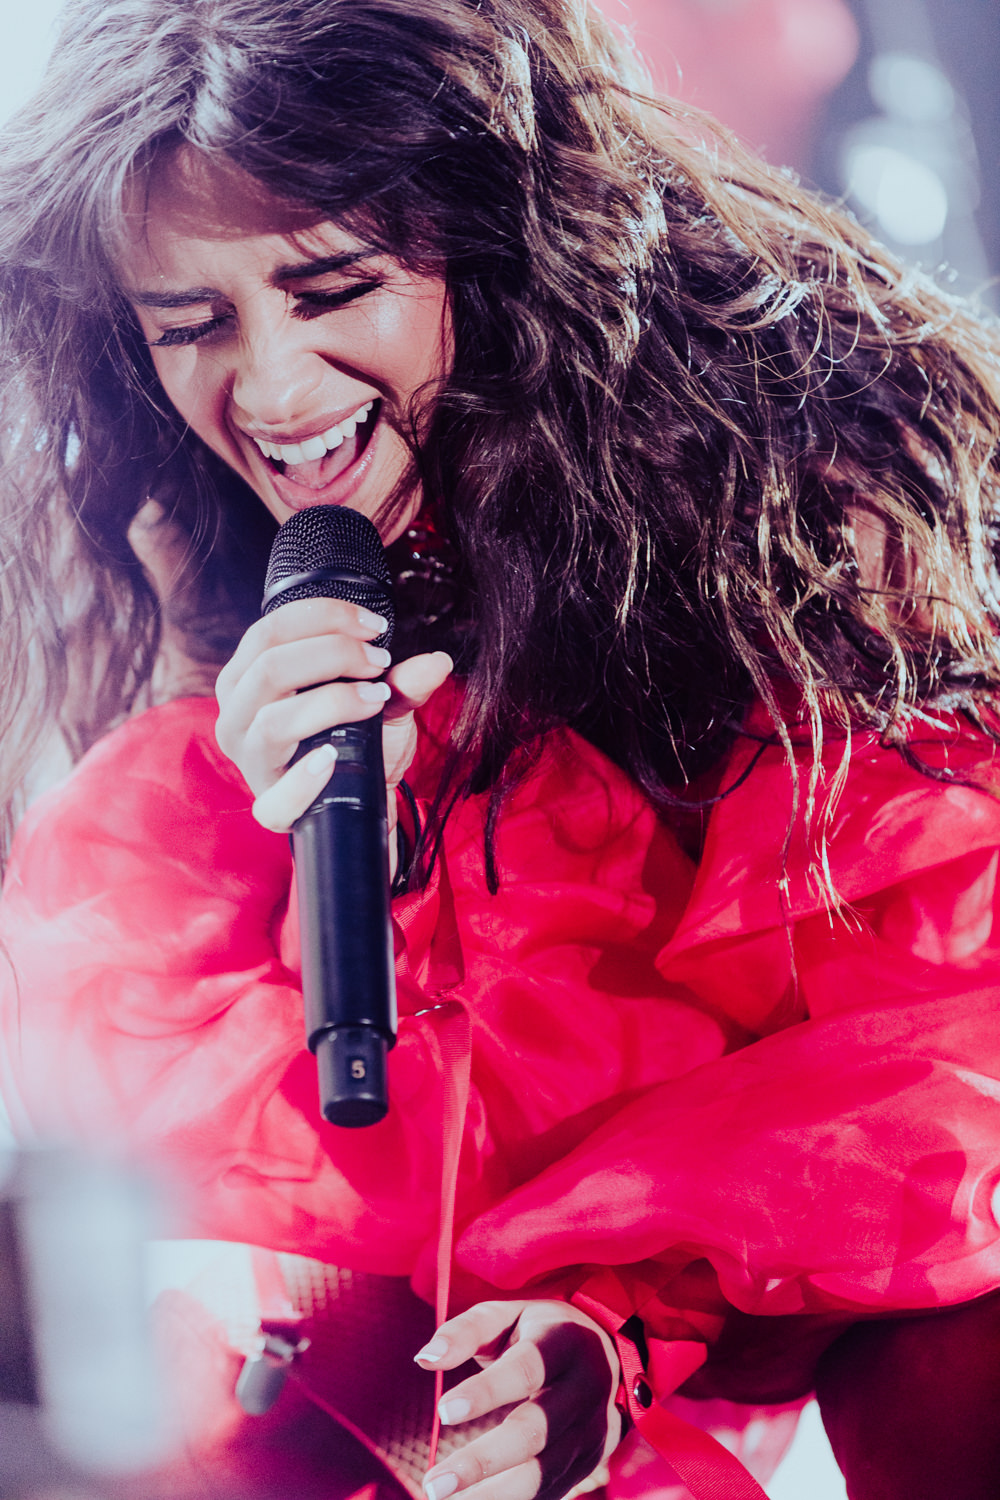 camila-cabello-close-up-singing-red-outfit-AnnaLeeMedia